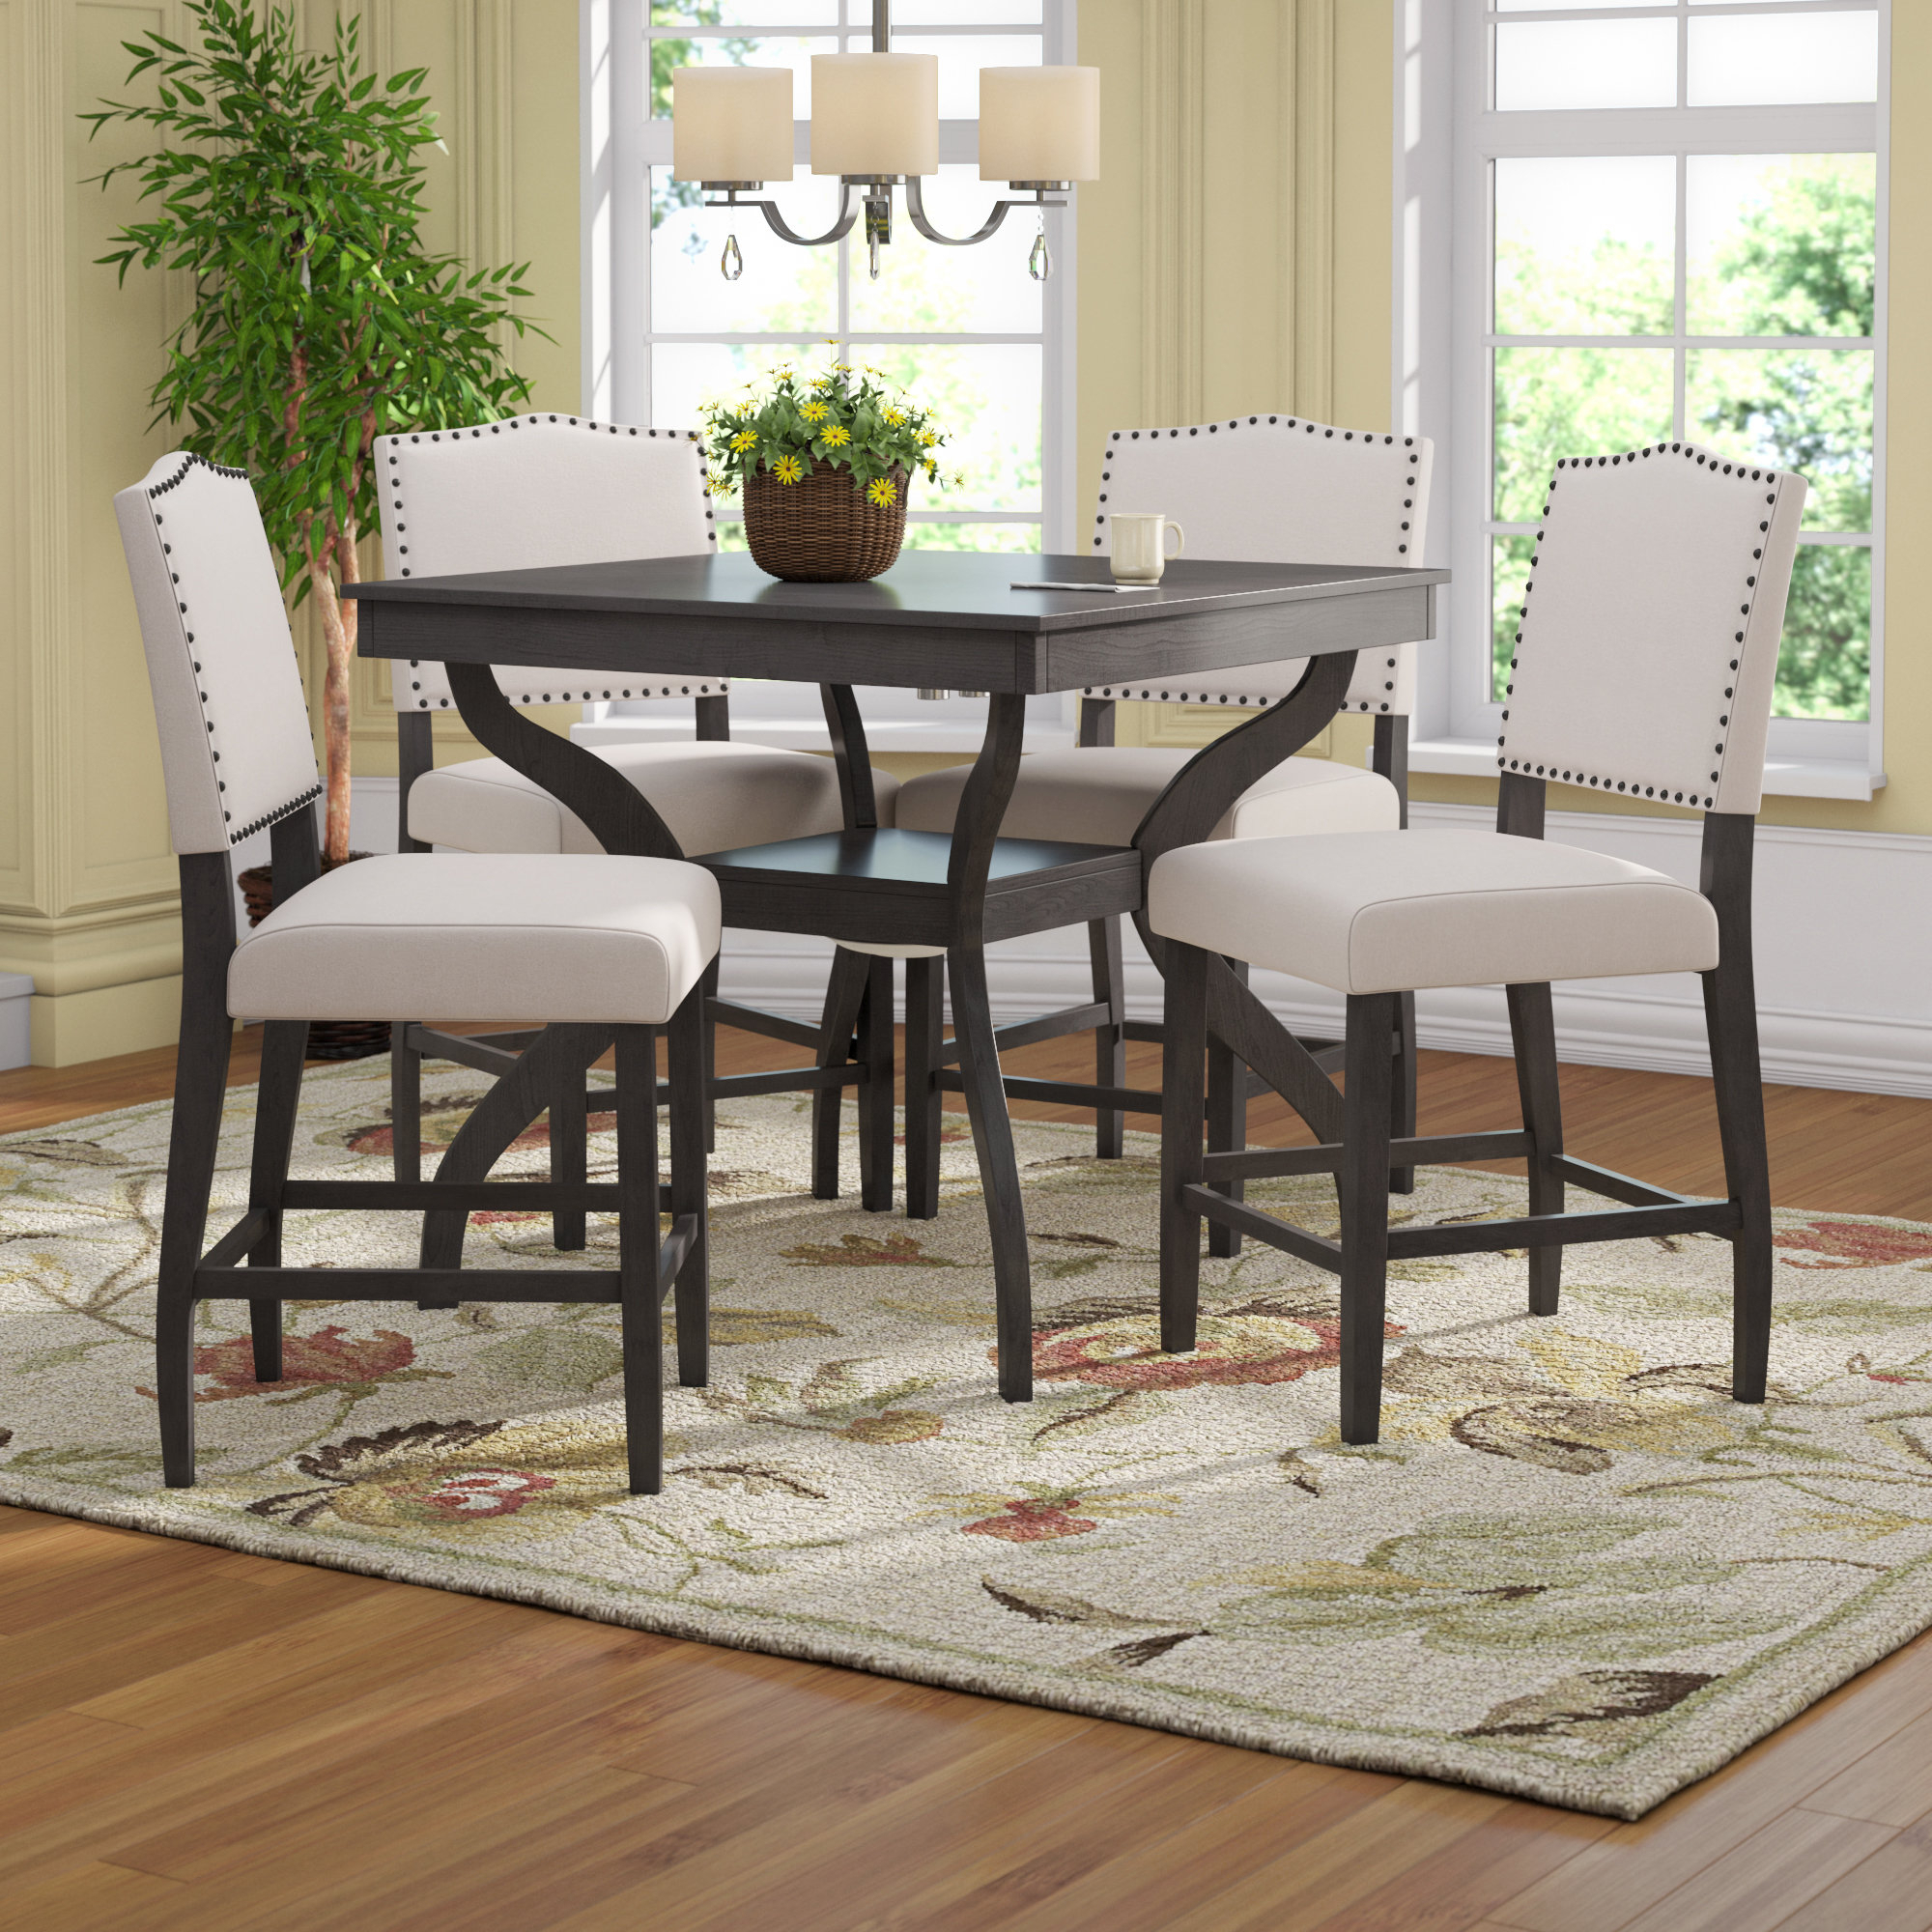 Preferred Ephraim 5 Piece Dining Sets Pertaining To Darby Home Co Campton 5 Piece Counter Height Dining Set & Reviews (View 18 of 25)